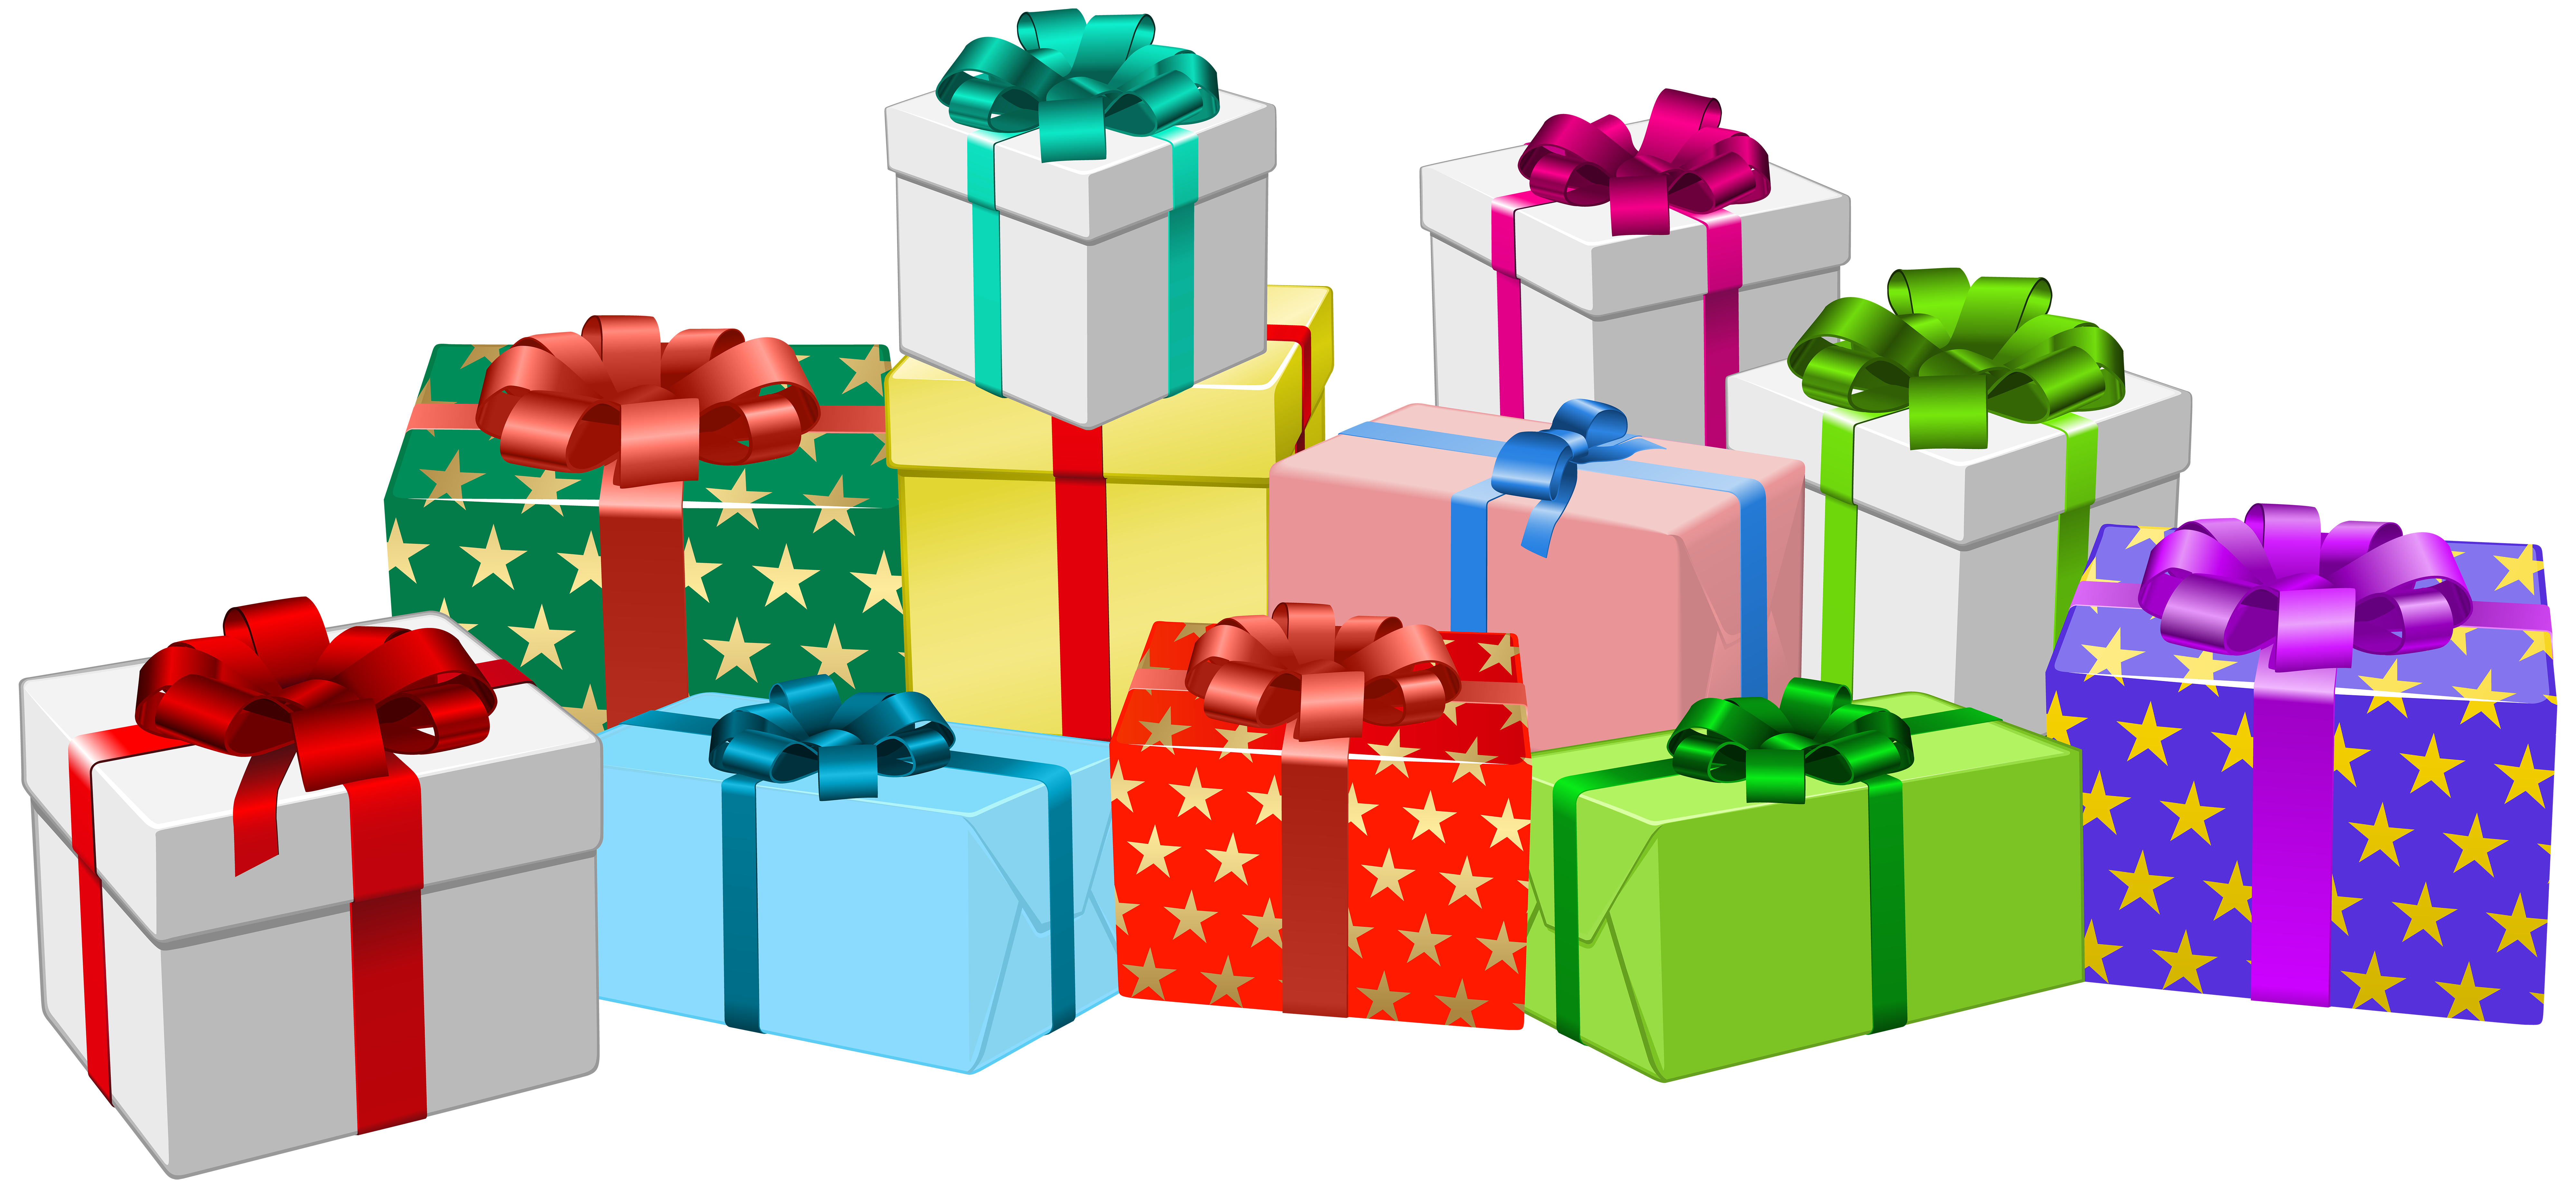 Gifts clipart. Gift boxes png clip